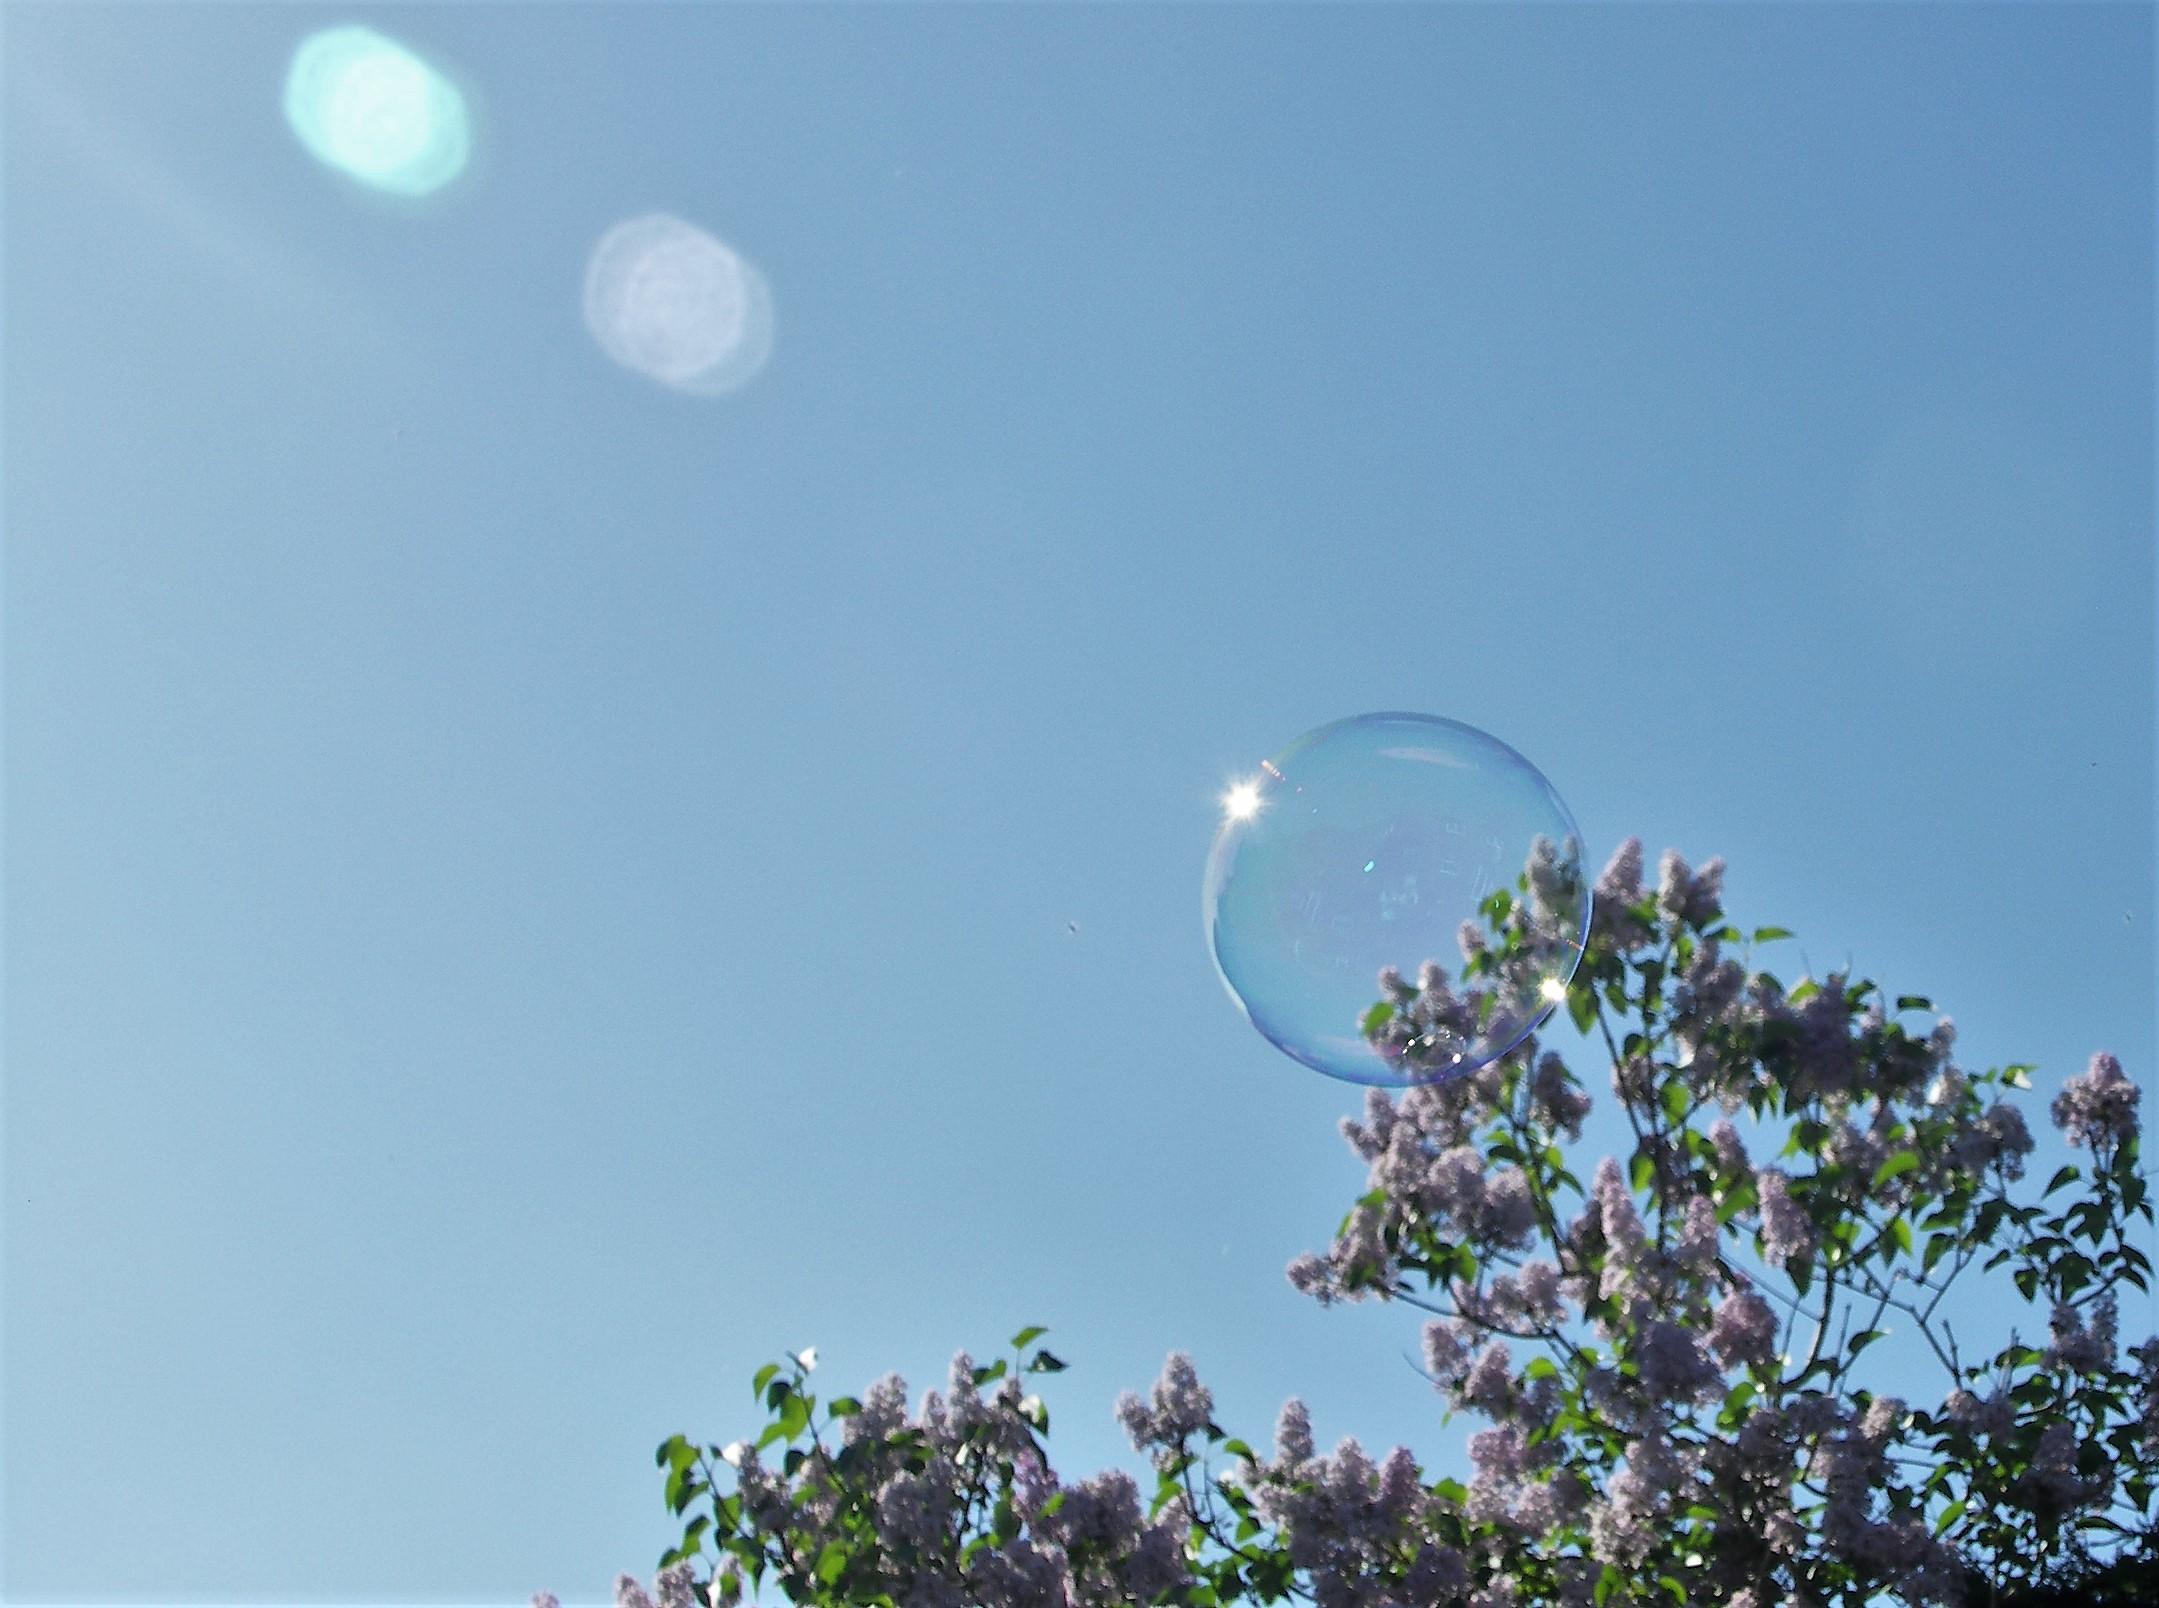 A bubble glinting in the sunlight